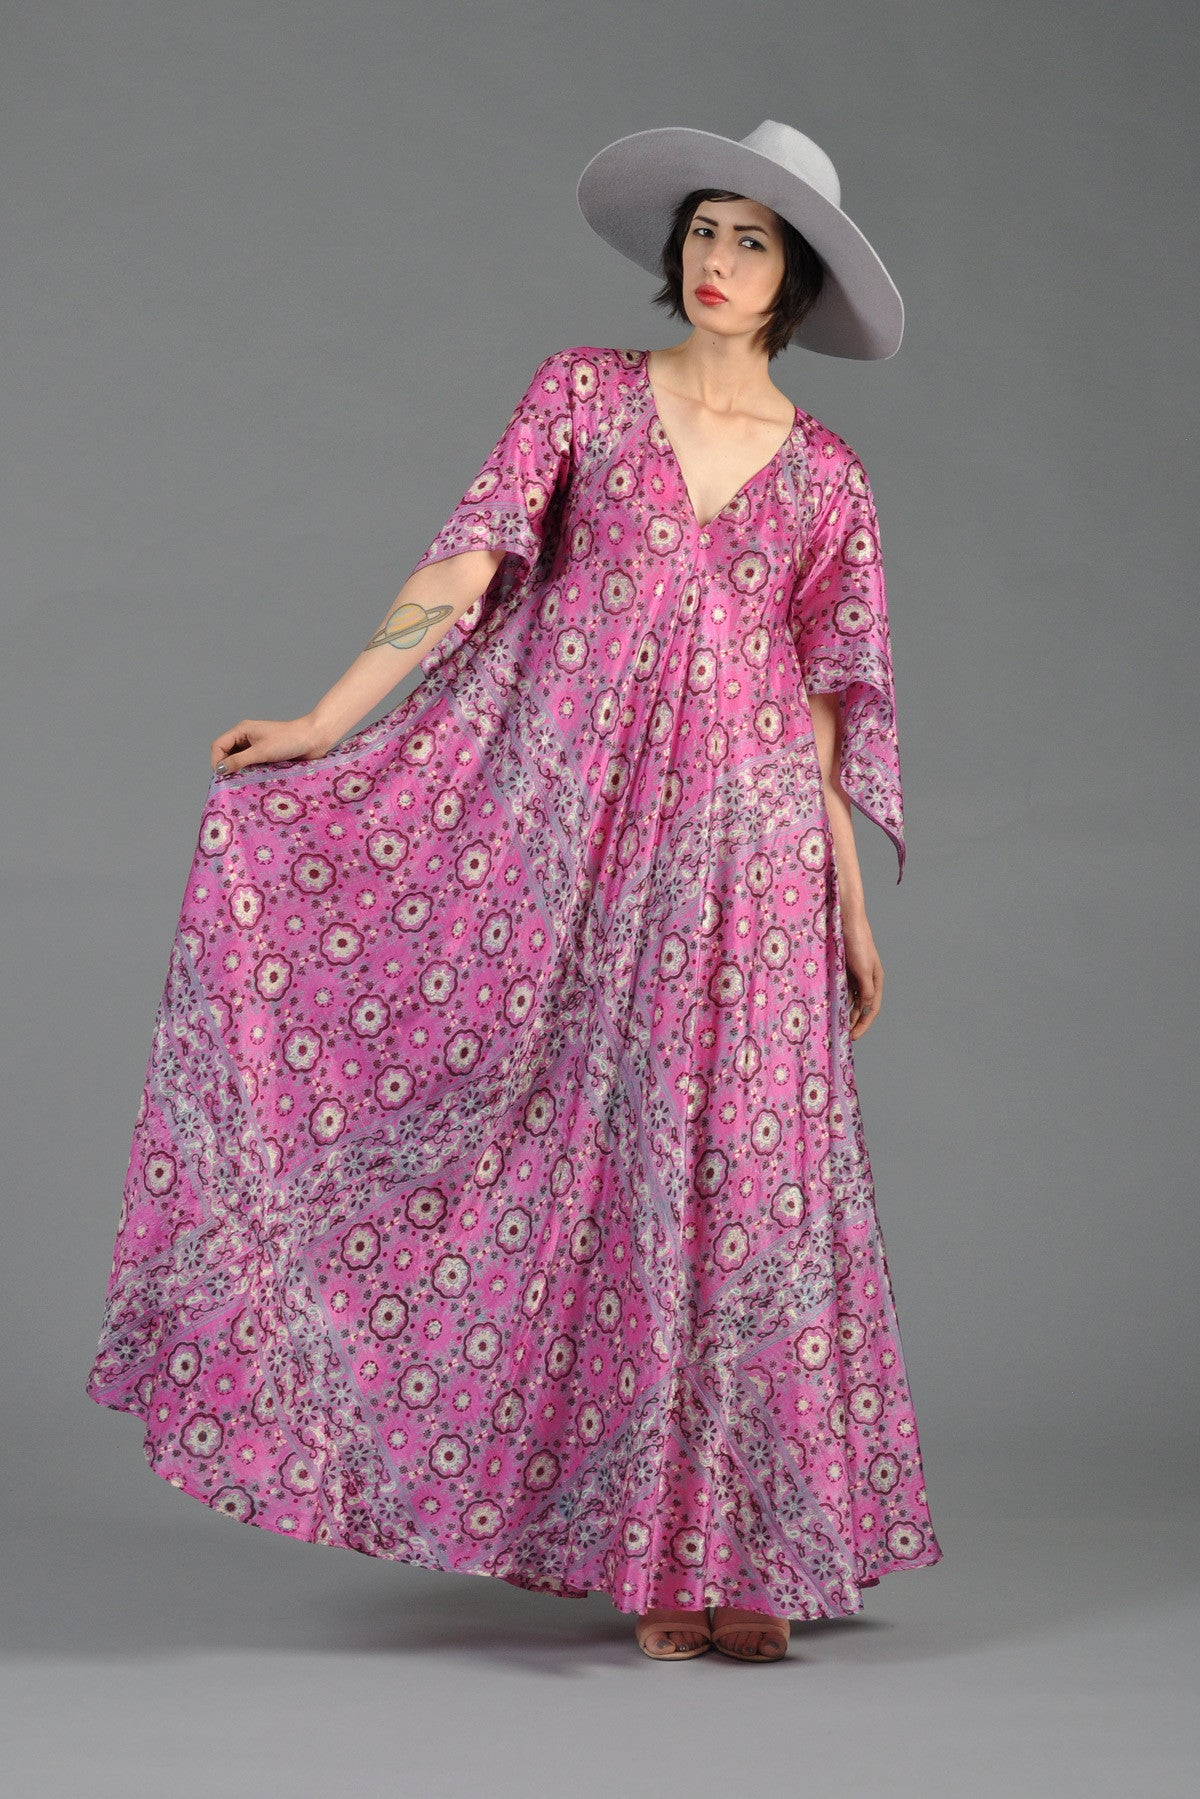 1970s 100 Silk Indian Maxi Dress With Angel Sleeves At